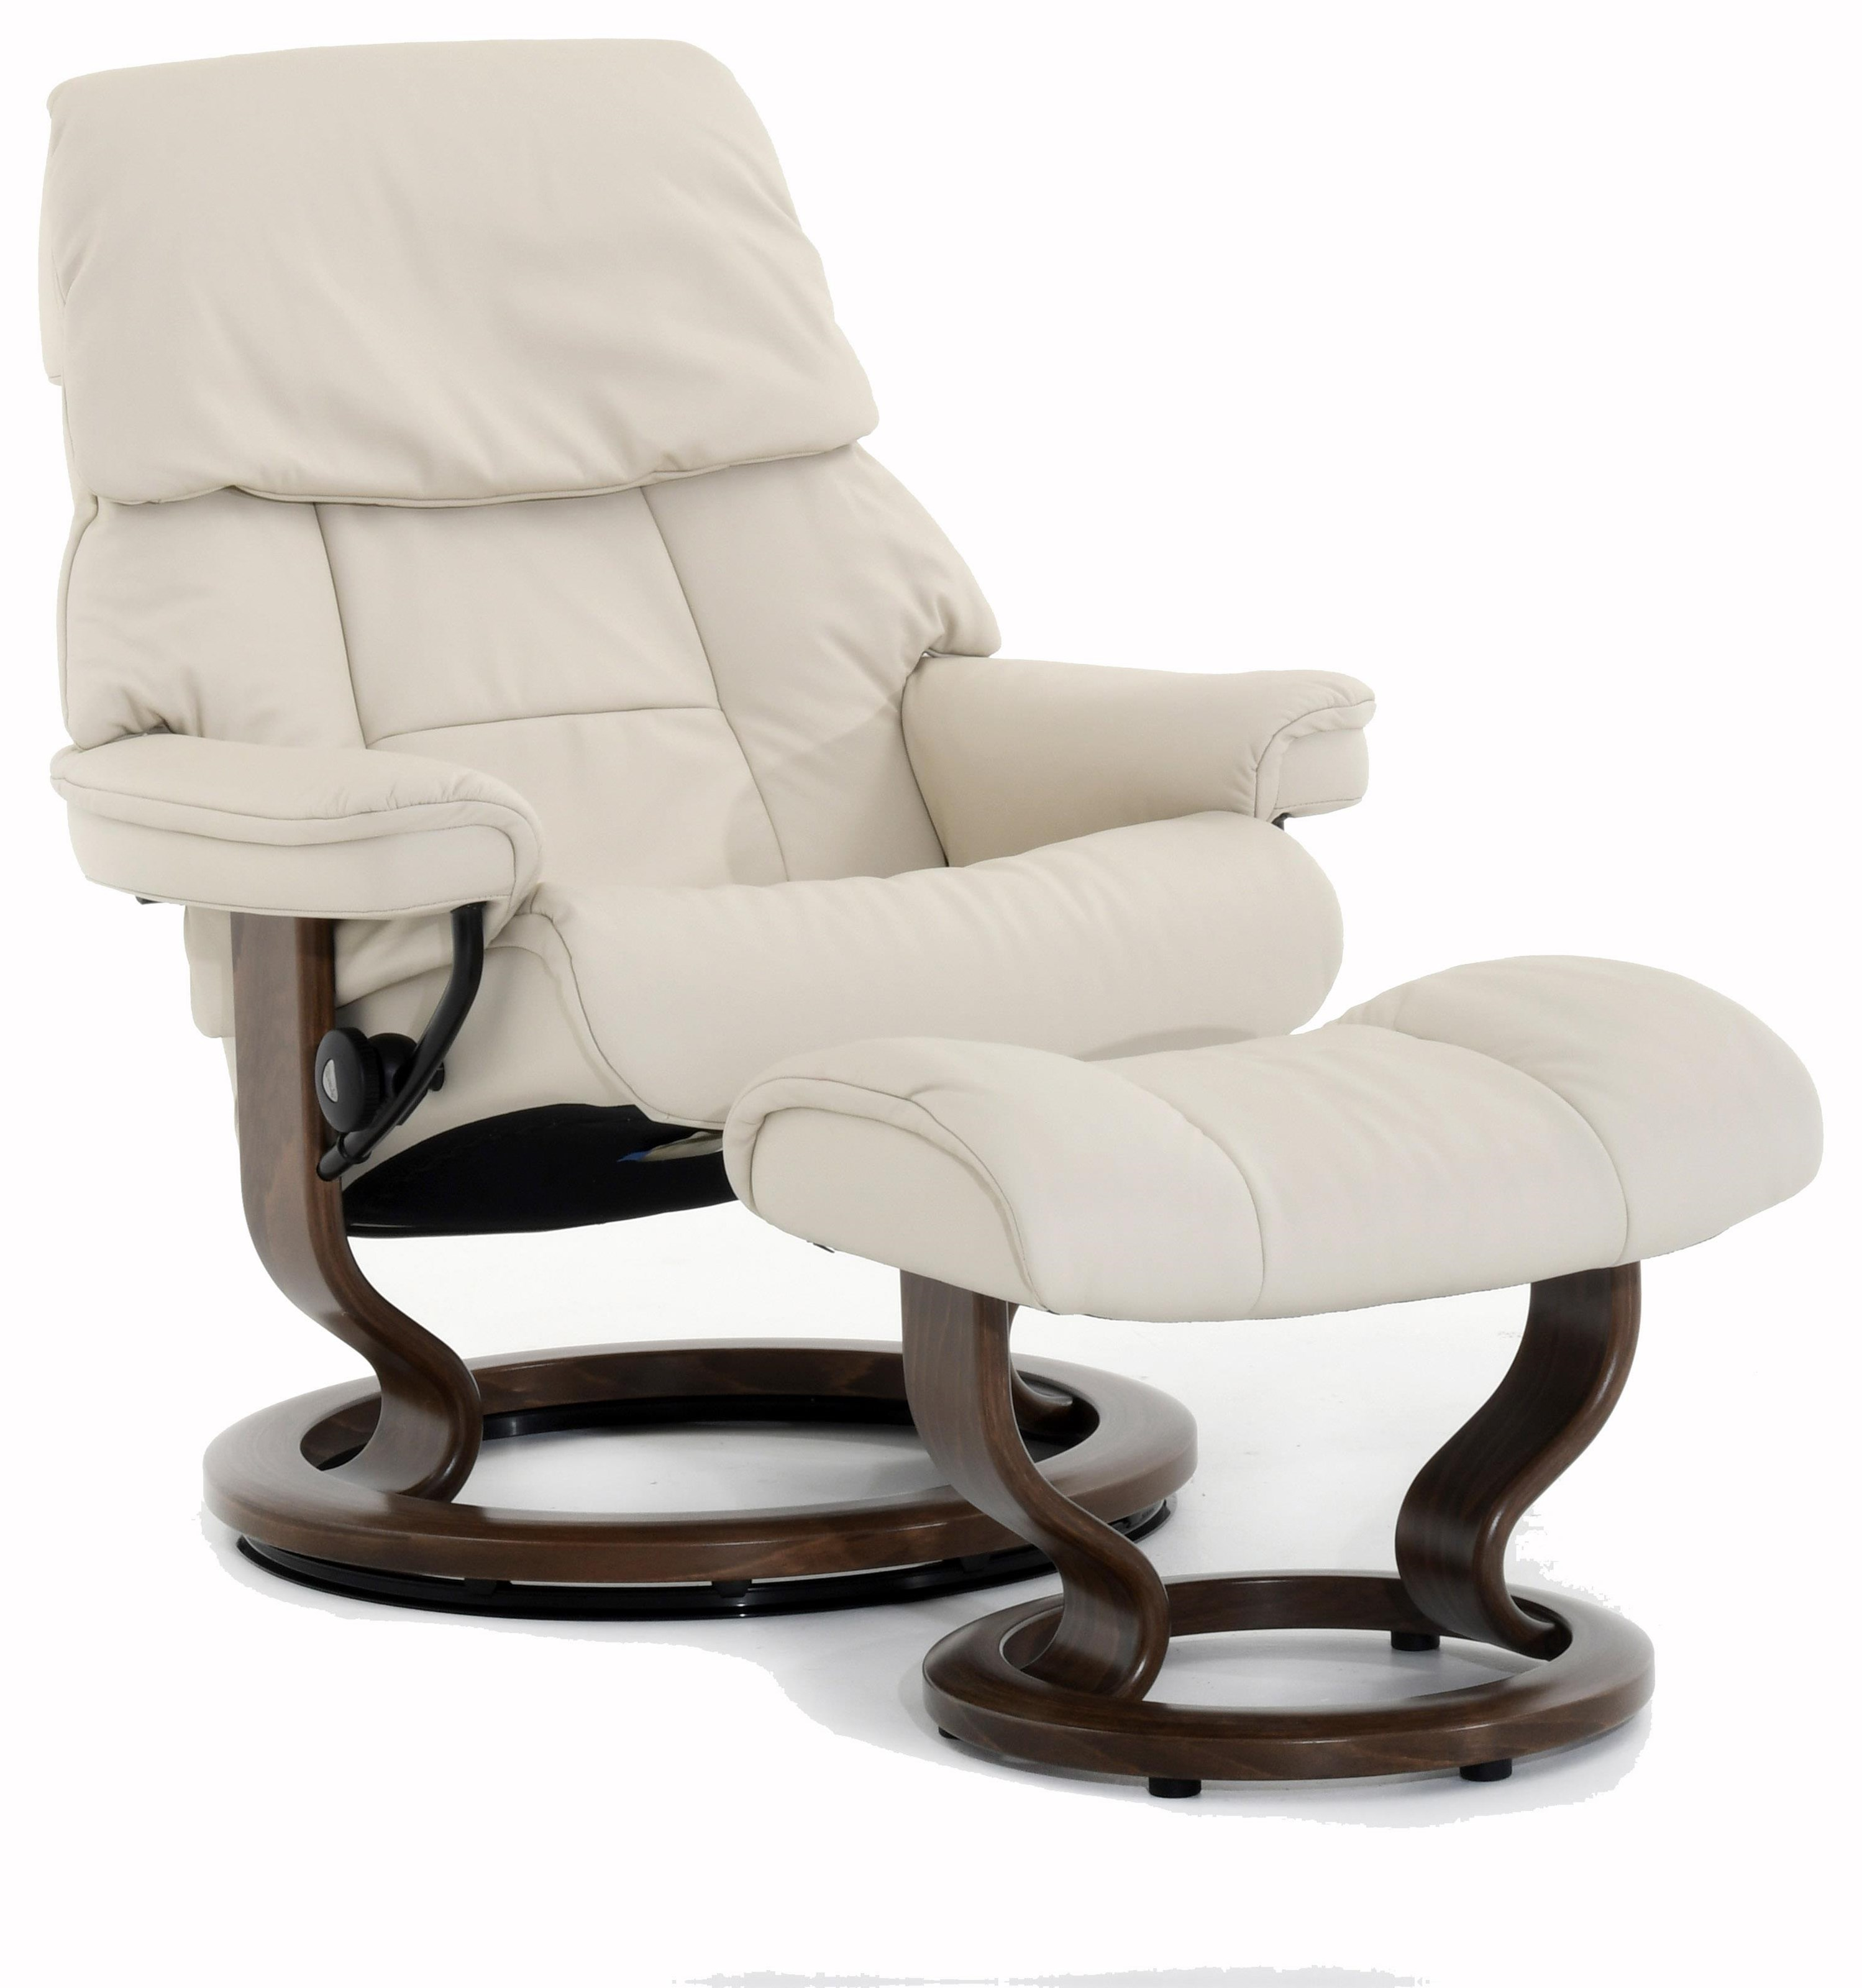 Stressless Ruby Medium Classic Chair by Stressless at Baer's Furniture